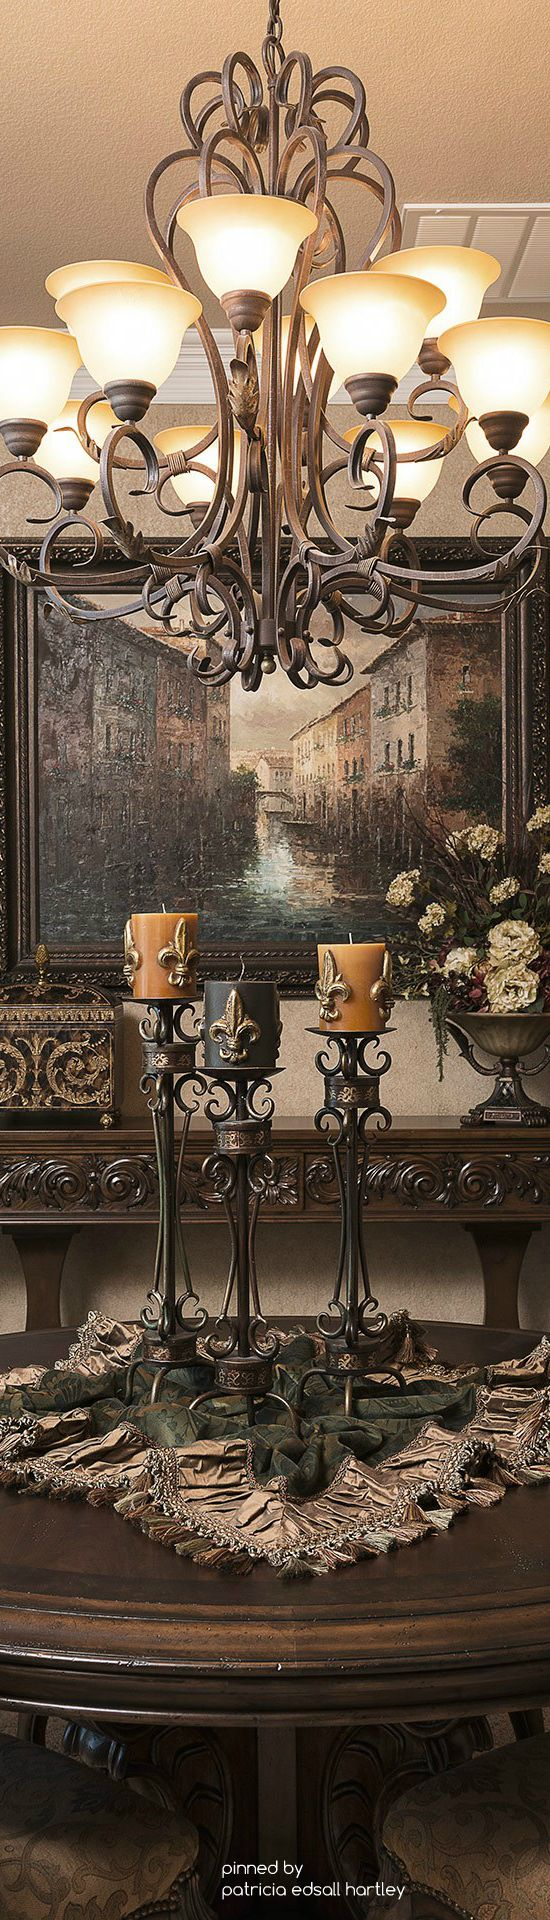 Rosamaria G Frangini | Architecture Old World, Mediterranean, Italian, Spanish & Tuscan Homes & Decor